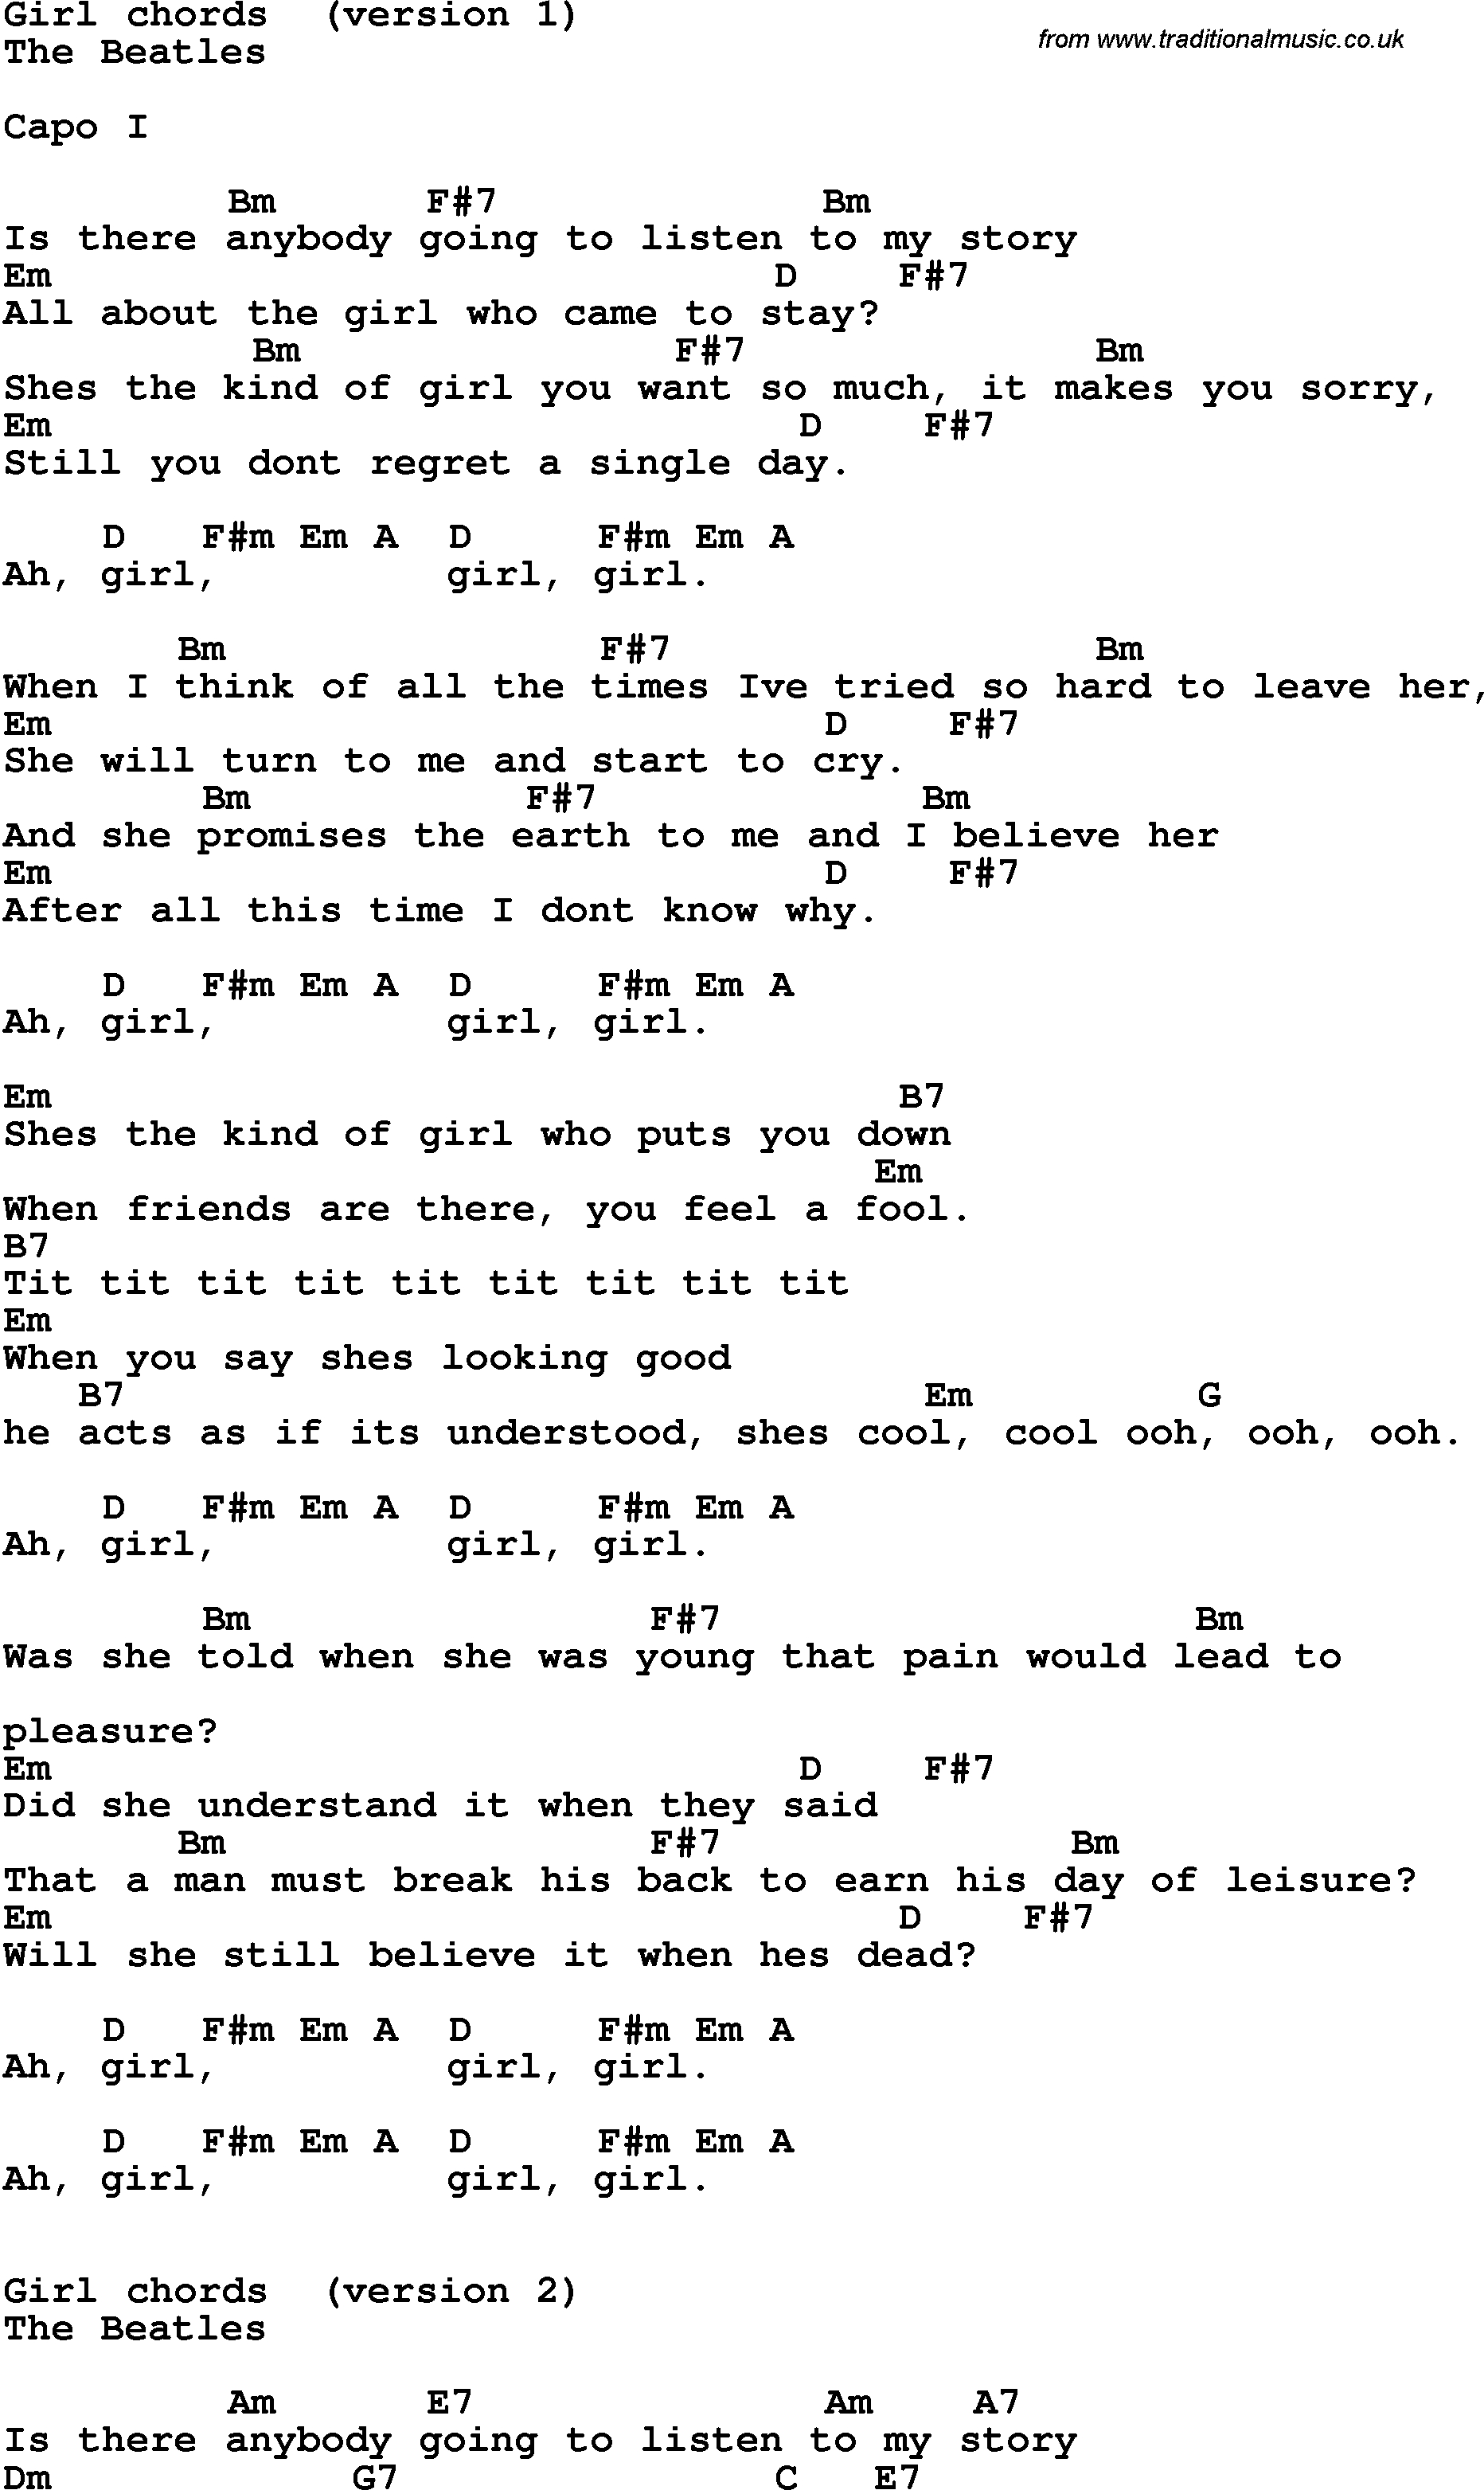 My Girl Chords Song Lyrics With Guitar Chords For Girl The Beatles